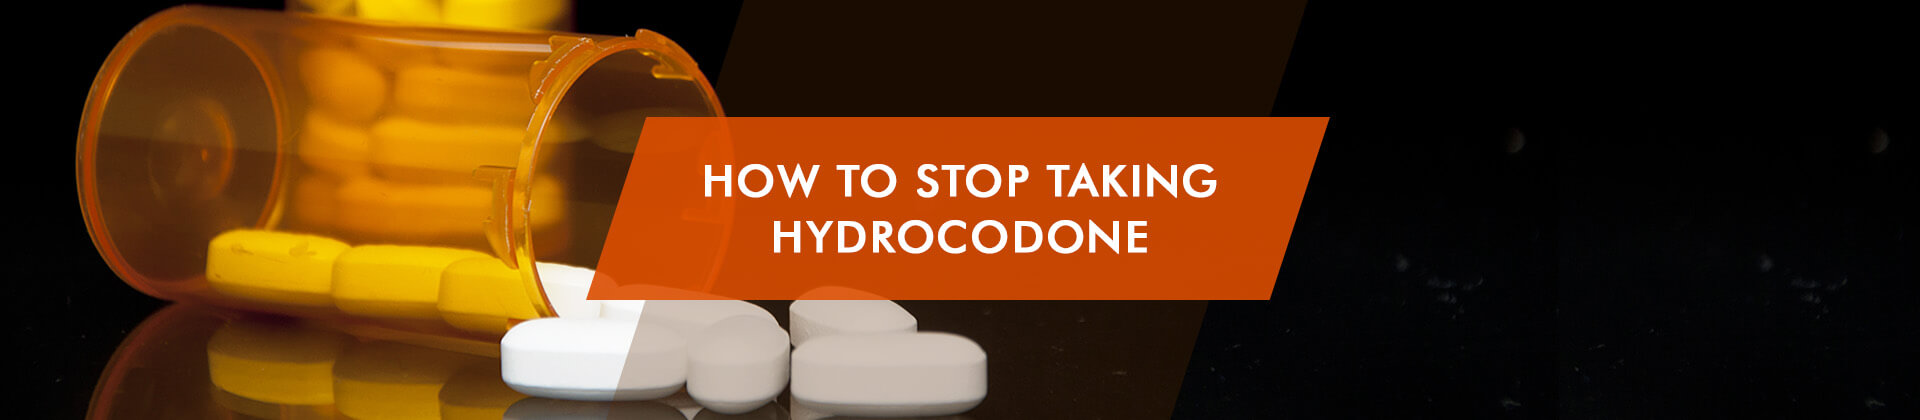 how to stop taking hydrocodone